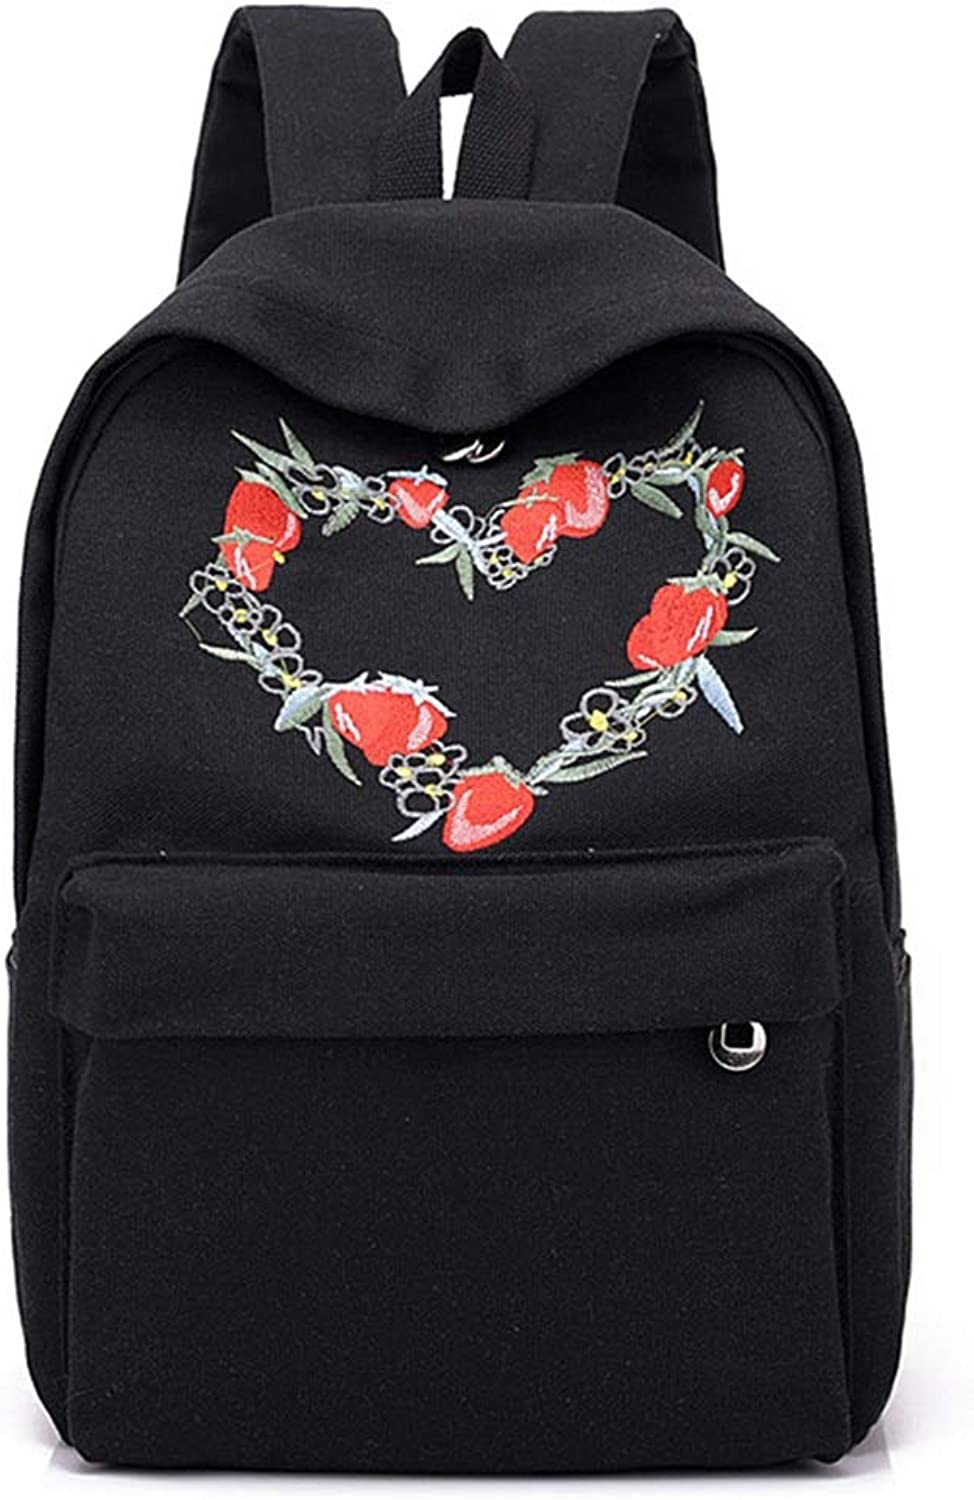 MISSKERVINFENDRIYUN YY4 Women's Flower Embroidery Backpack Leisure Travel Large Capacity Backpack College Student Bag (color   Black)